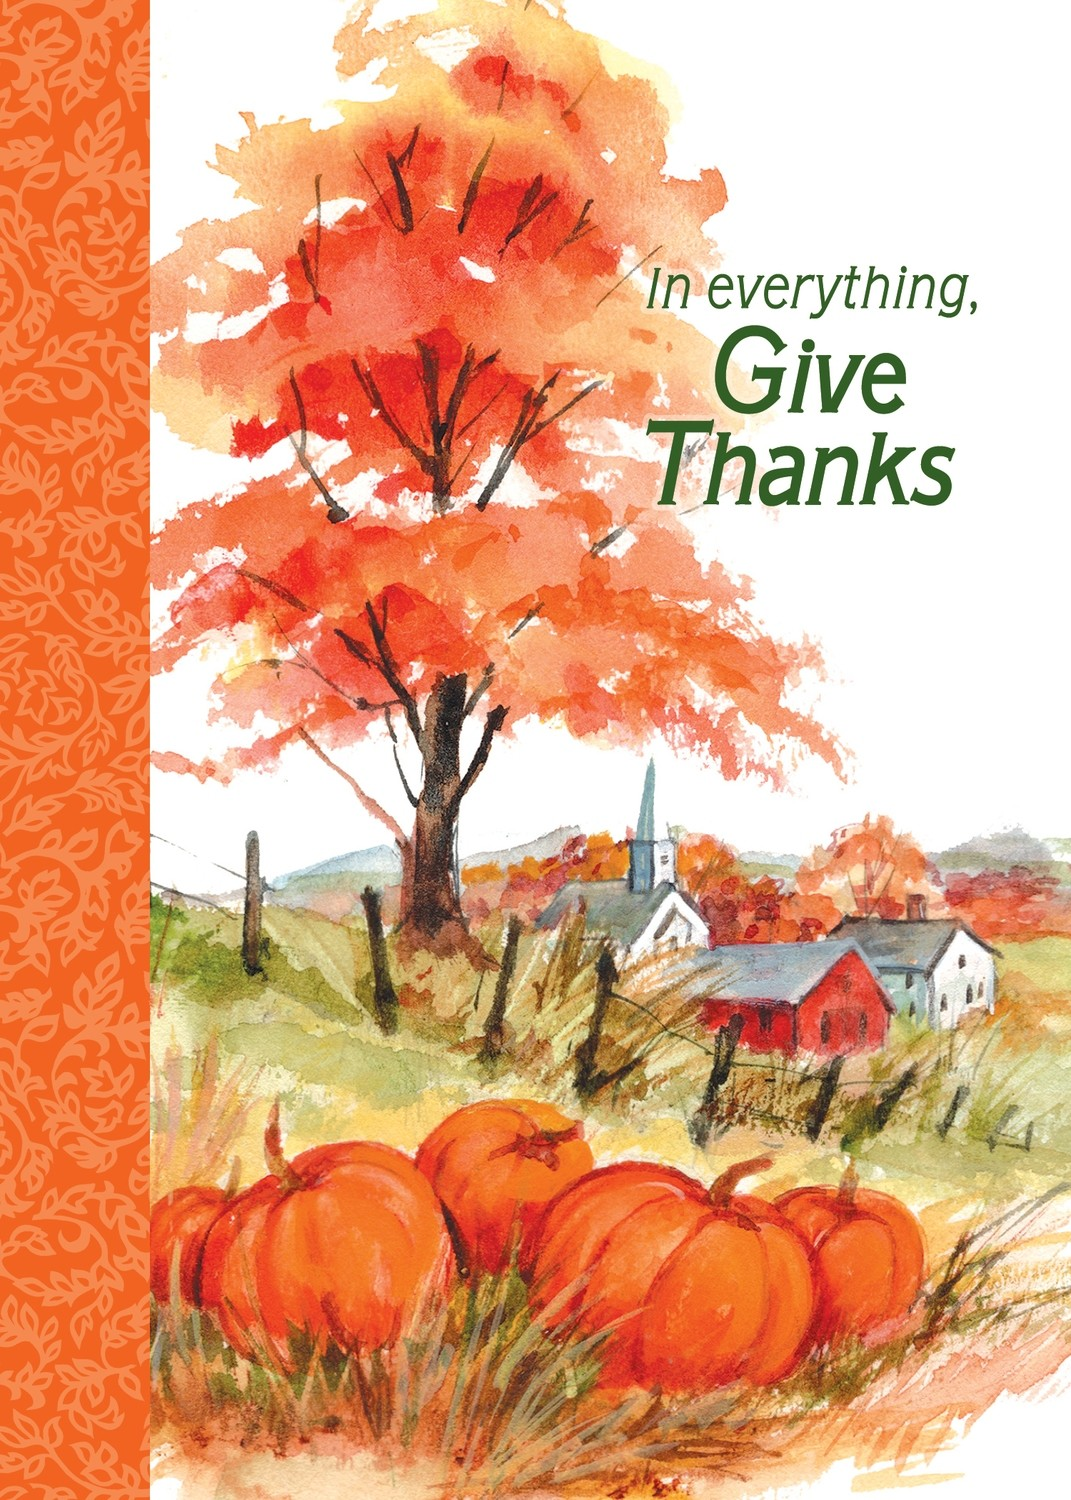 FRS 589 / 7955  Thanksgiving Card